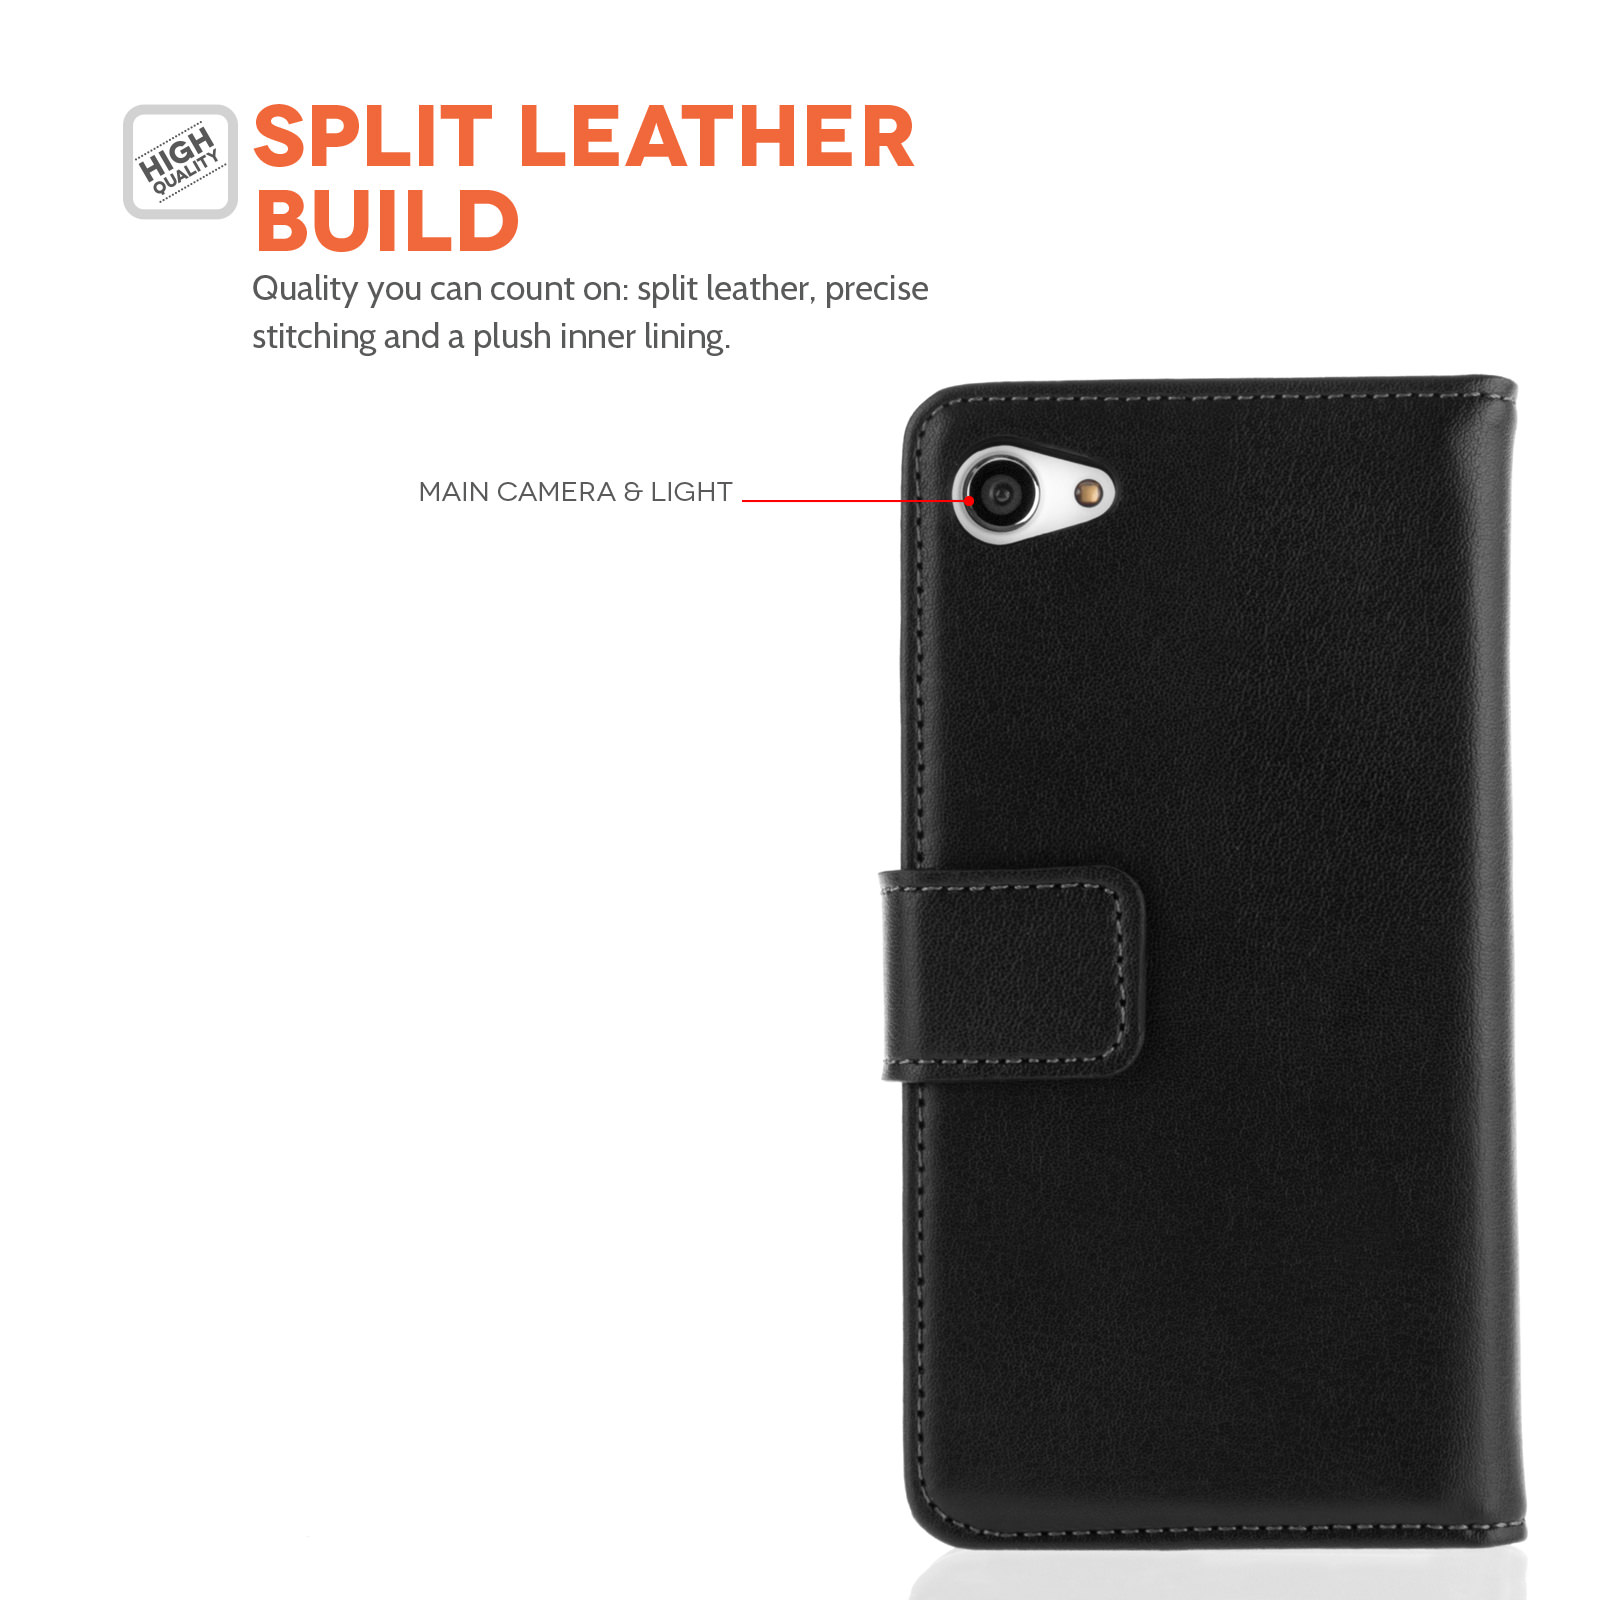 Caseflex Sony Xperia Z5 Compact Real Leather Wallet Case - Black